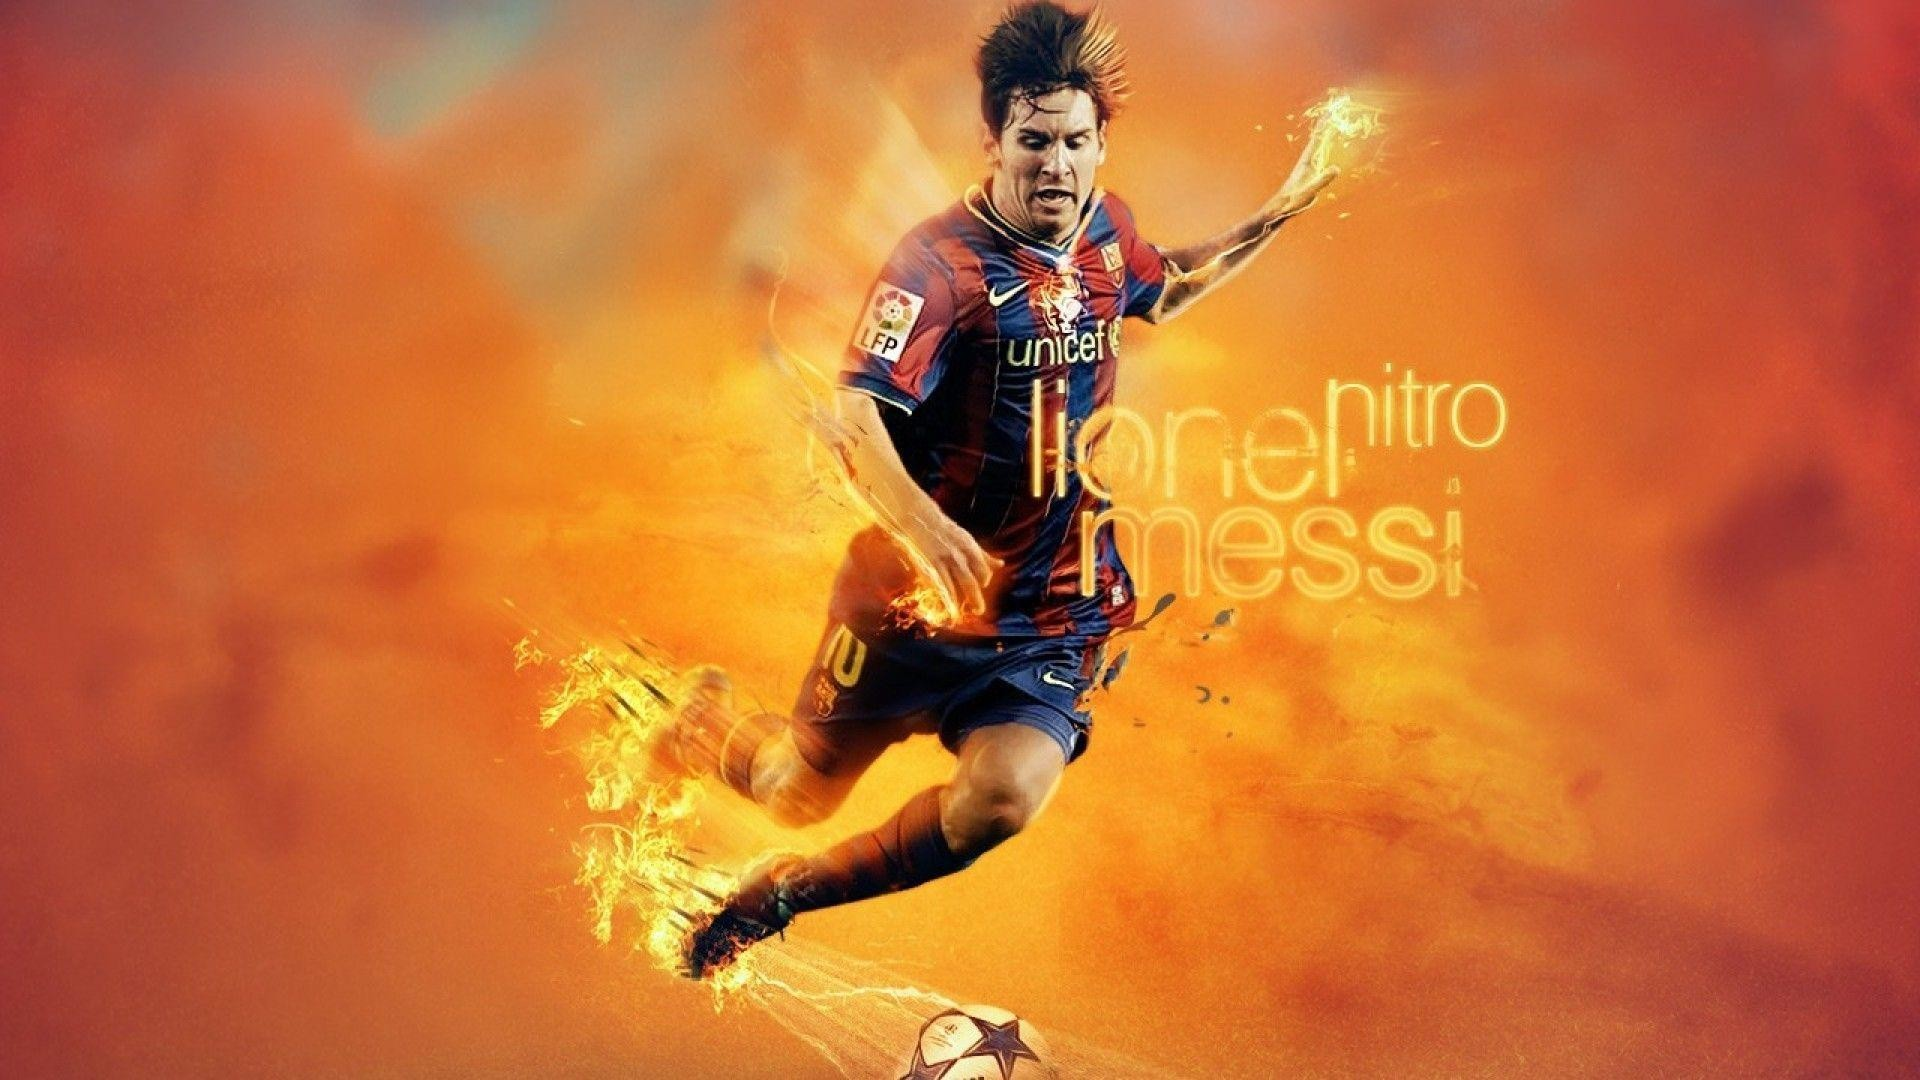 Lionel Messi HD Wallpapers 2018 (80+ Images